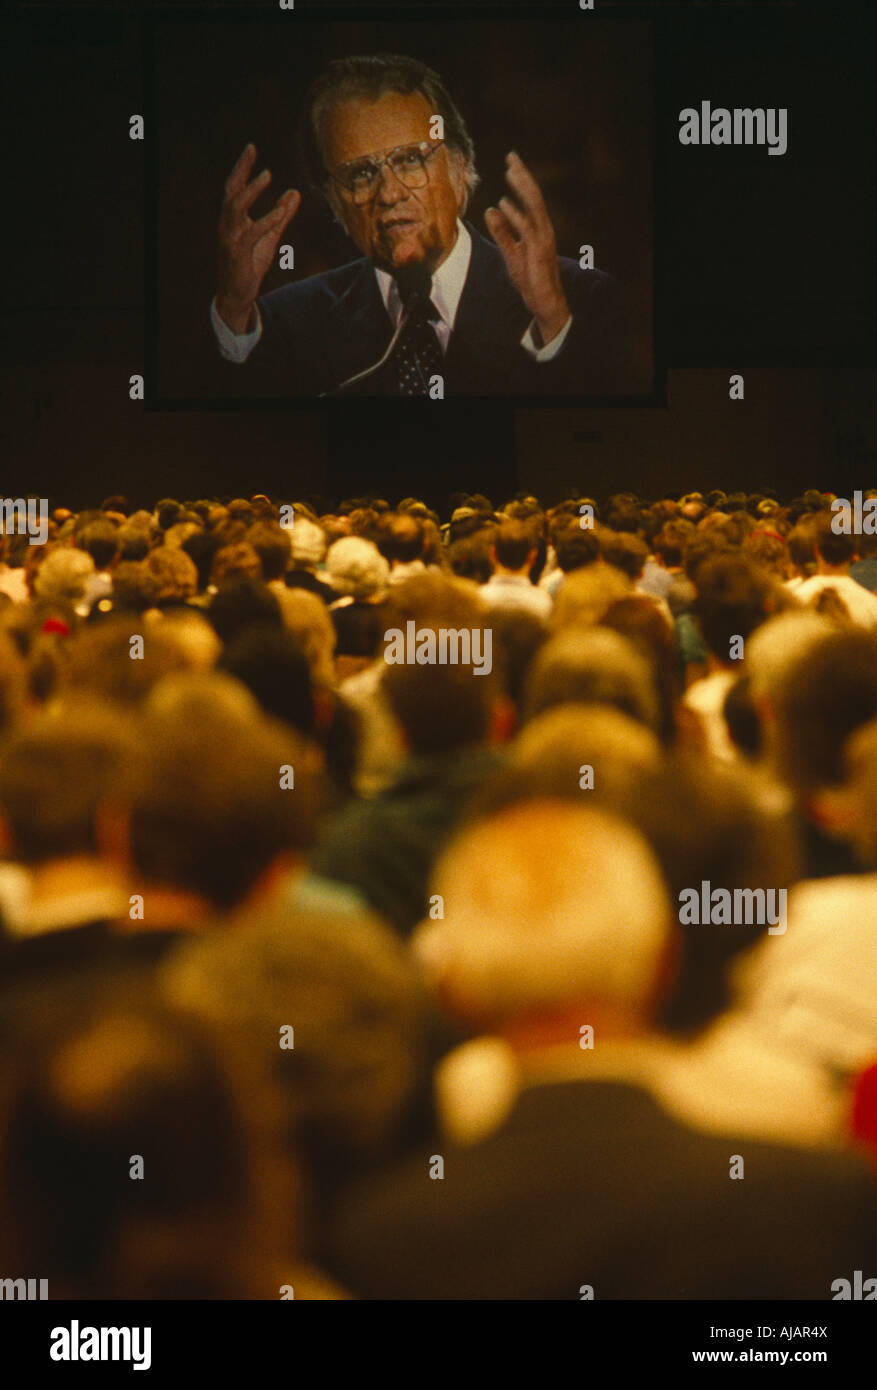 relayed-on-a-giant-screen-billy-graham-p